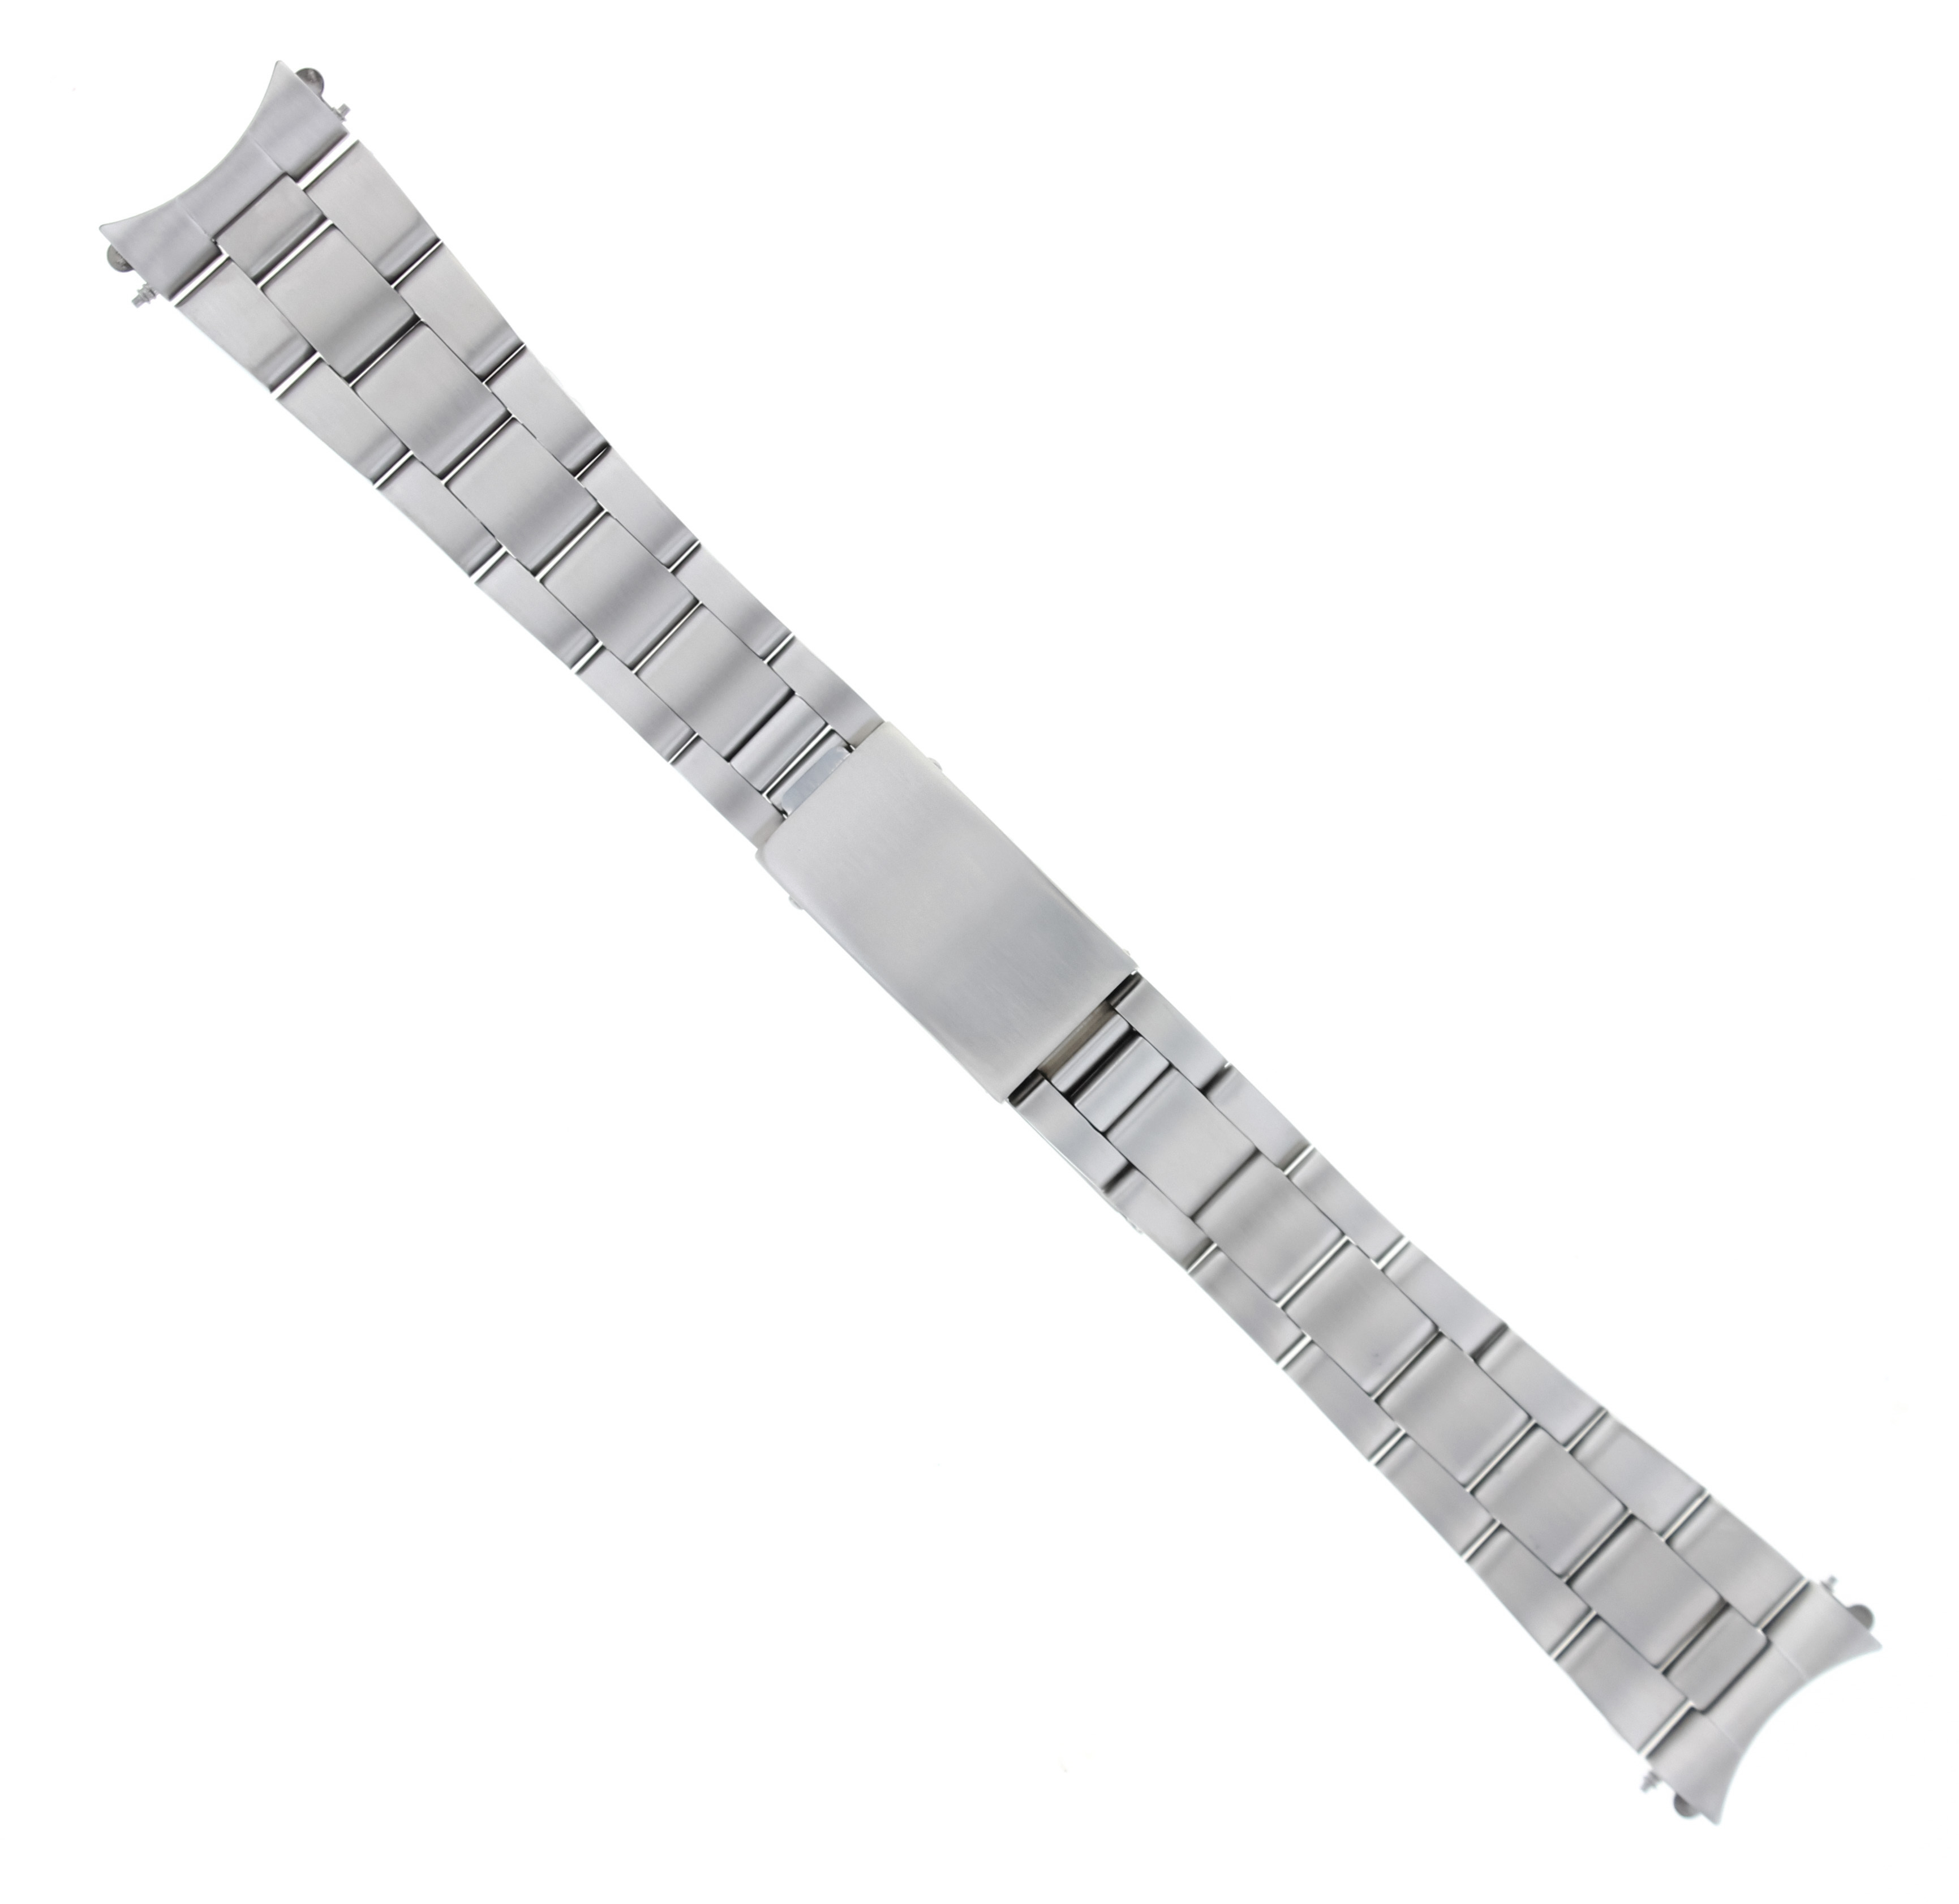 OYSTER SOLID WATCH BAND LINK STAINLESS STEEL FOR ROLEX SUBMARINER MATTE 19MM HVY